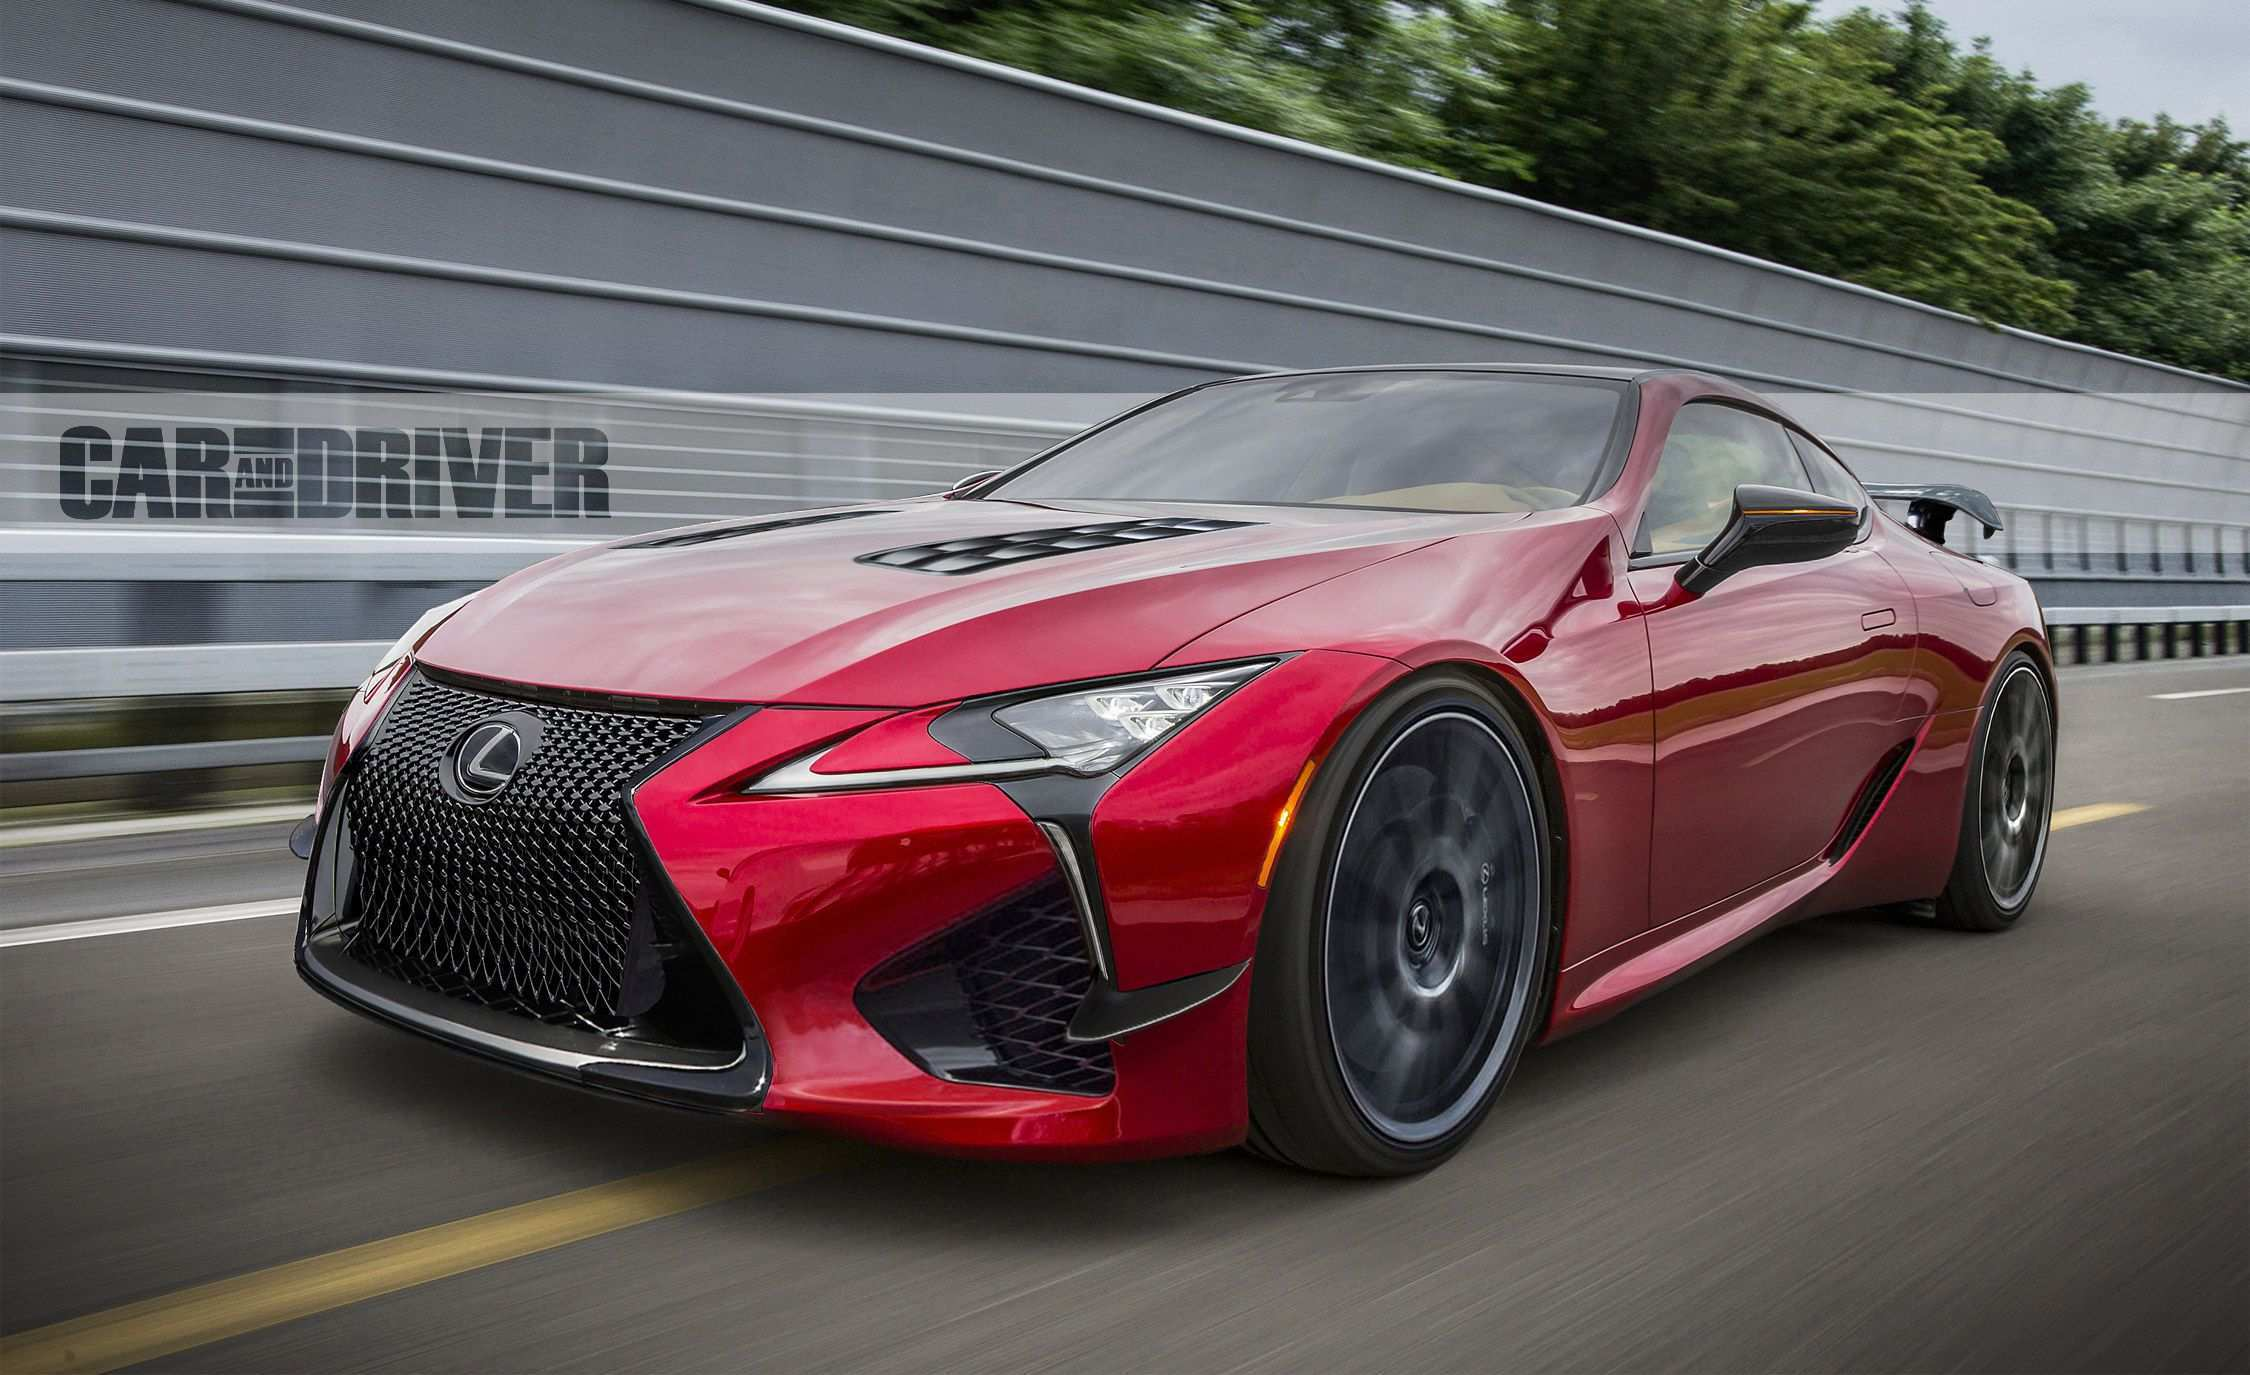 98 Concept of 2019 Lexus Lc F Spy Shoot by 2019 Lexus Lc F